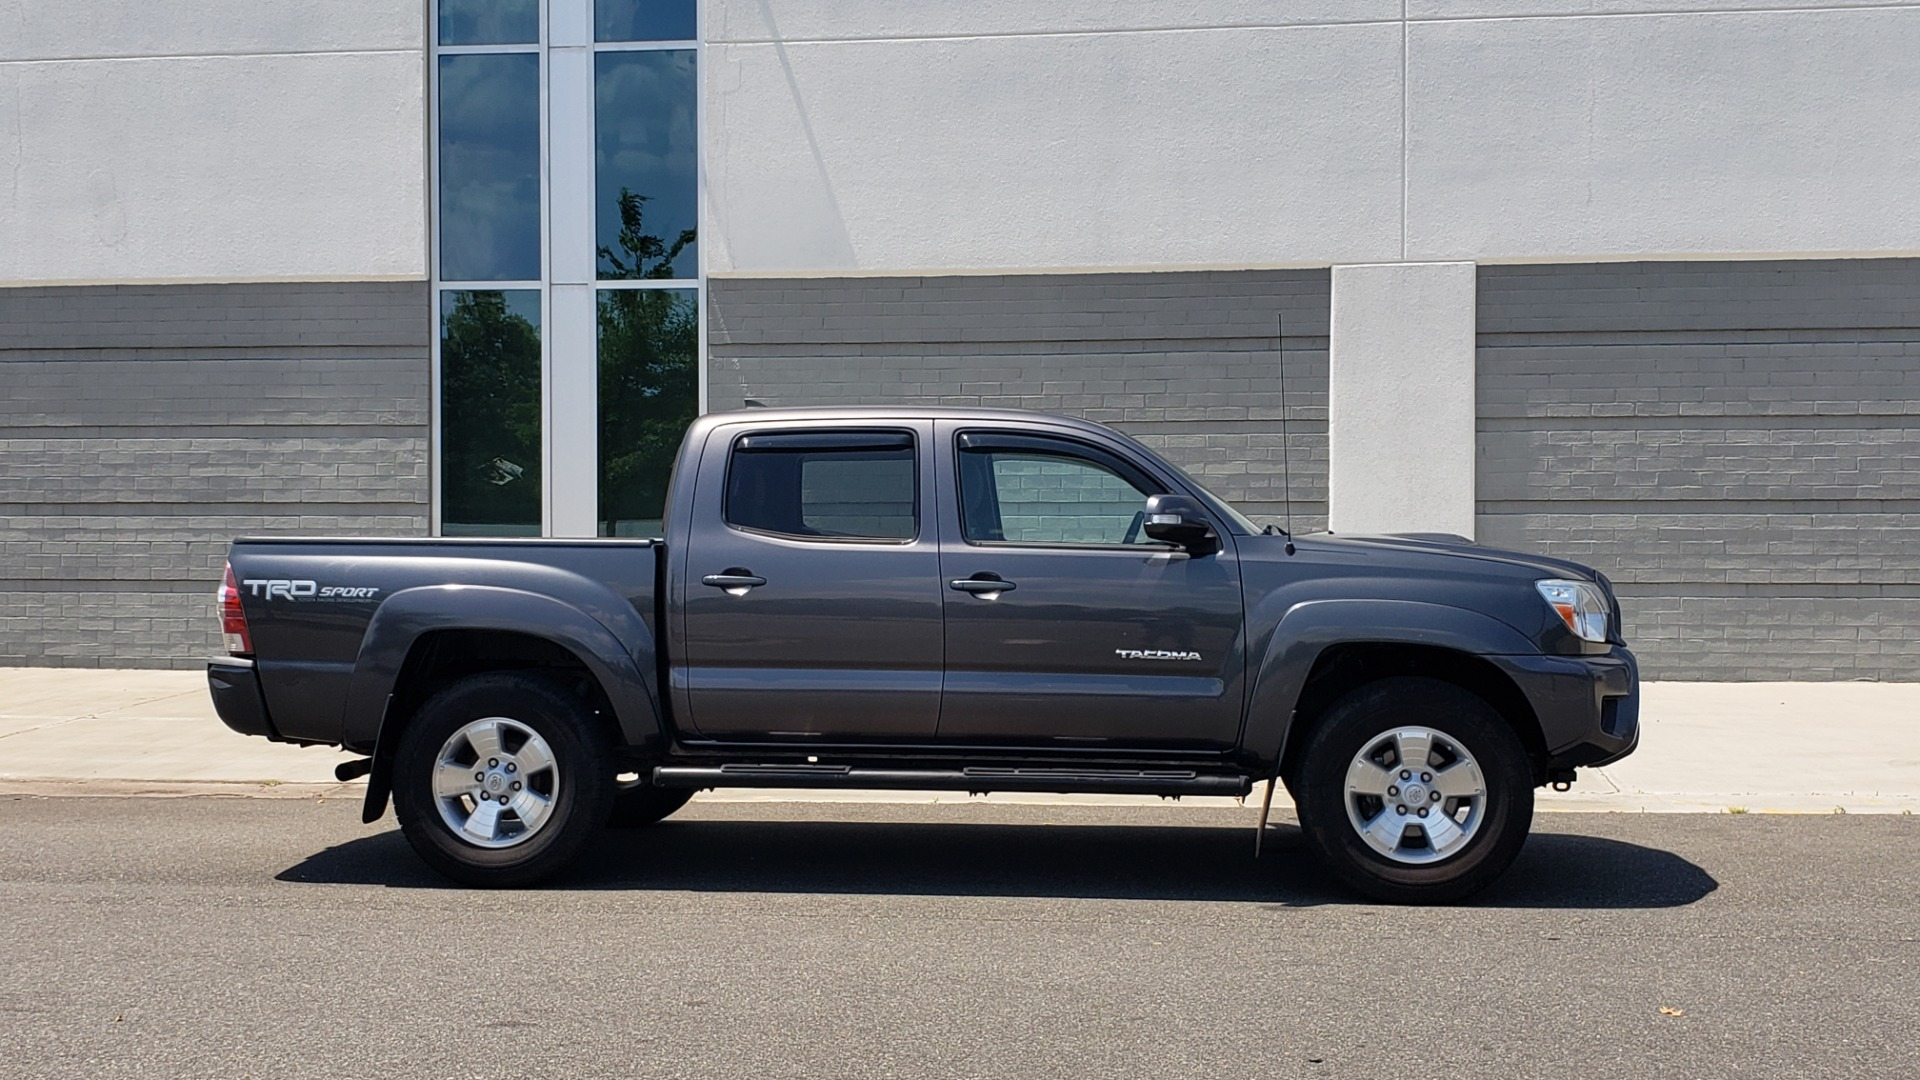 Used 2014 Toyota TACOMA PRERUNNER DOUBLECAB / TRD SPORT / V6 / 5-SPD AUTO / TOW PKG for sale $21,595 at Formula Imports in Charlotte NC 28227 5